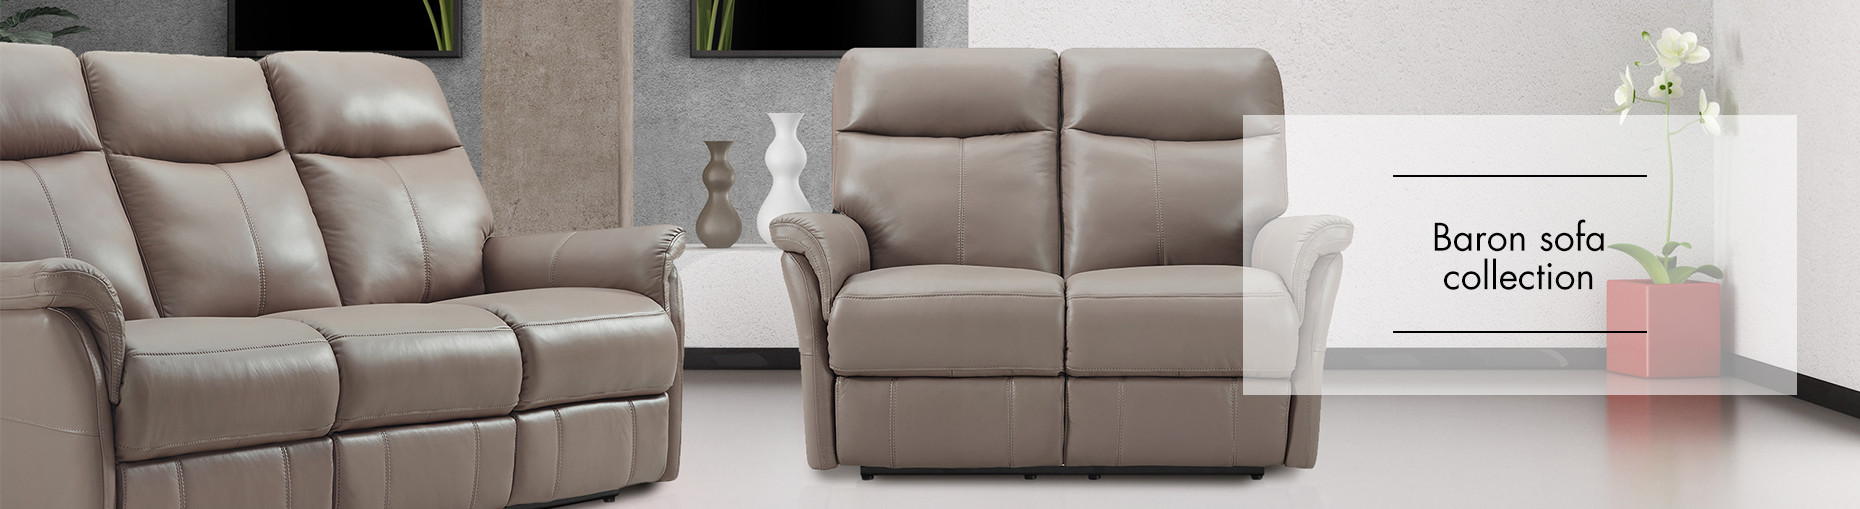 Prime Baron Leather Sofa Collection Forrest Furnishing Glasgows Evergreenethics Interior Chair Design Evergreenethicsorg